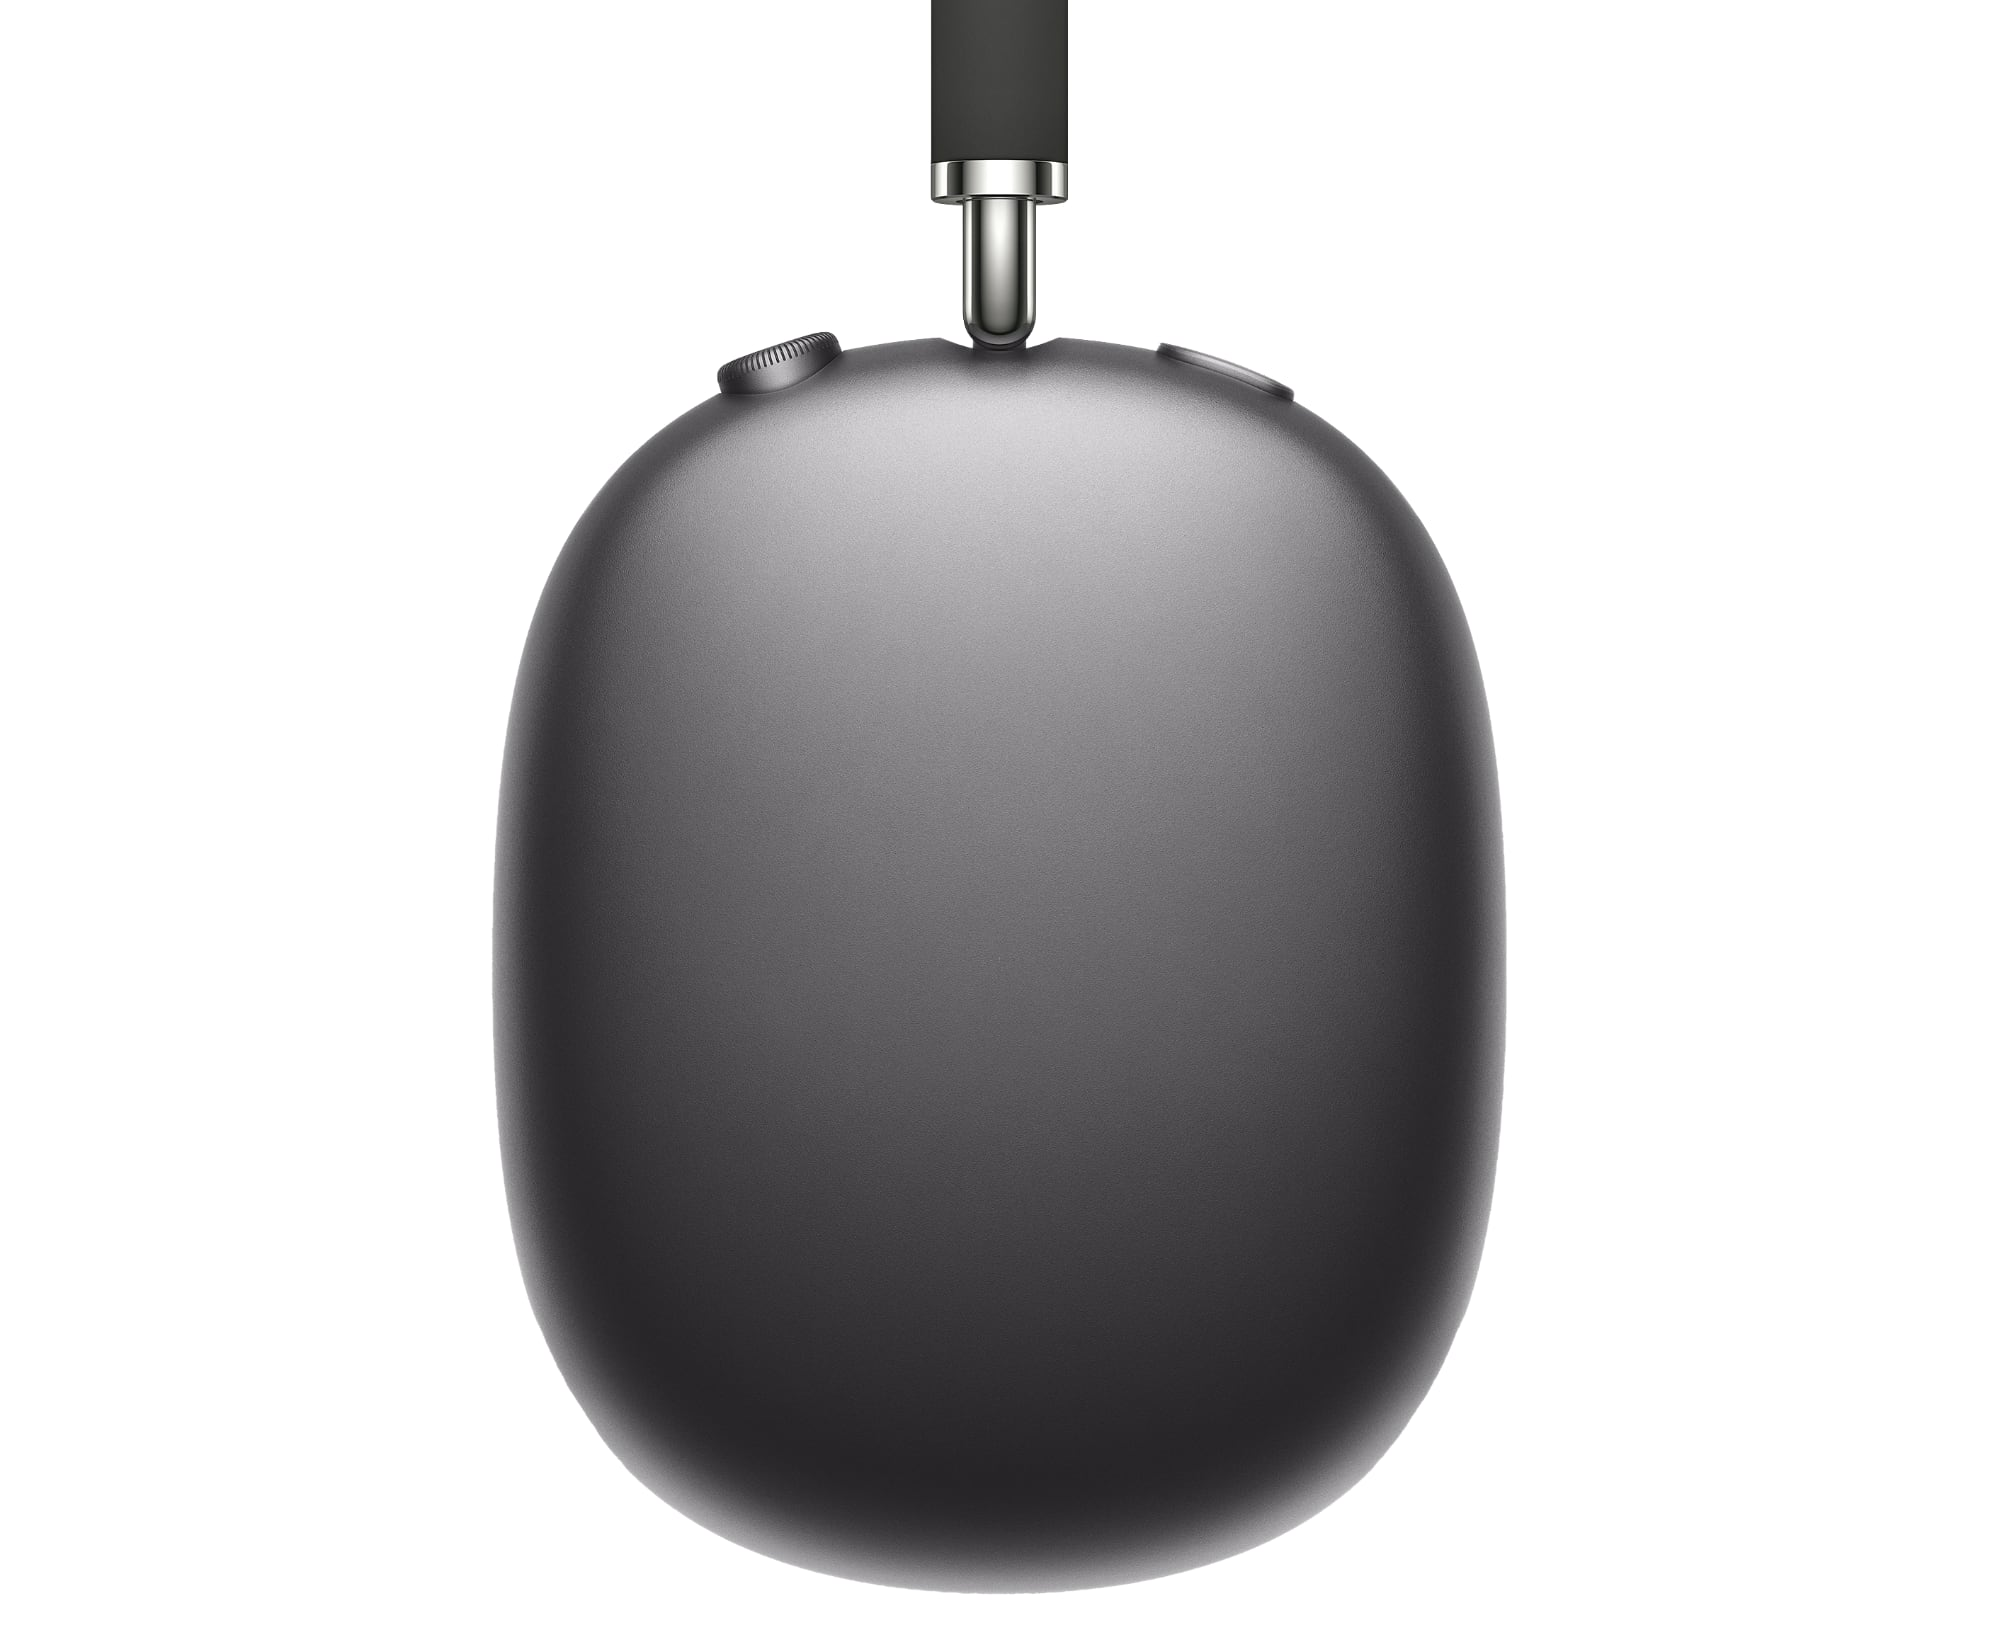 airpods max ear cup